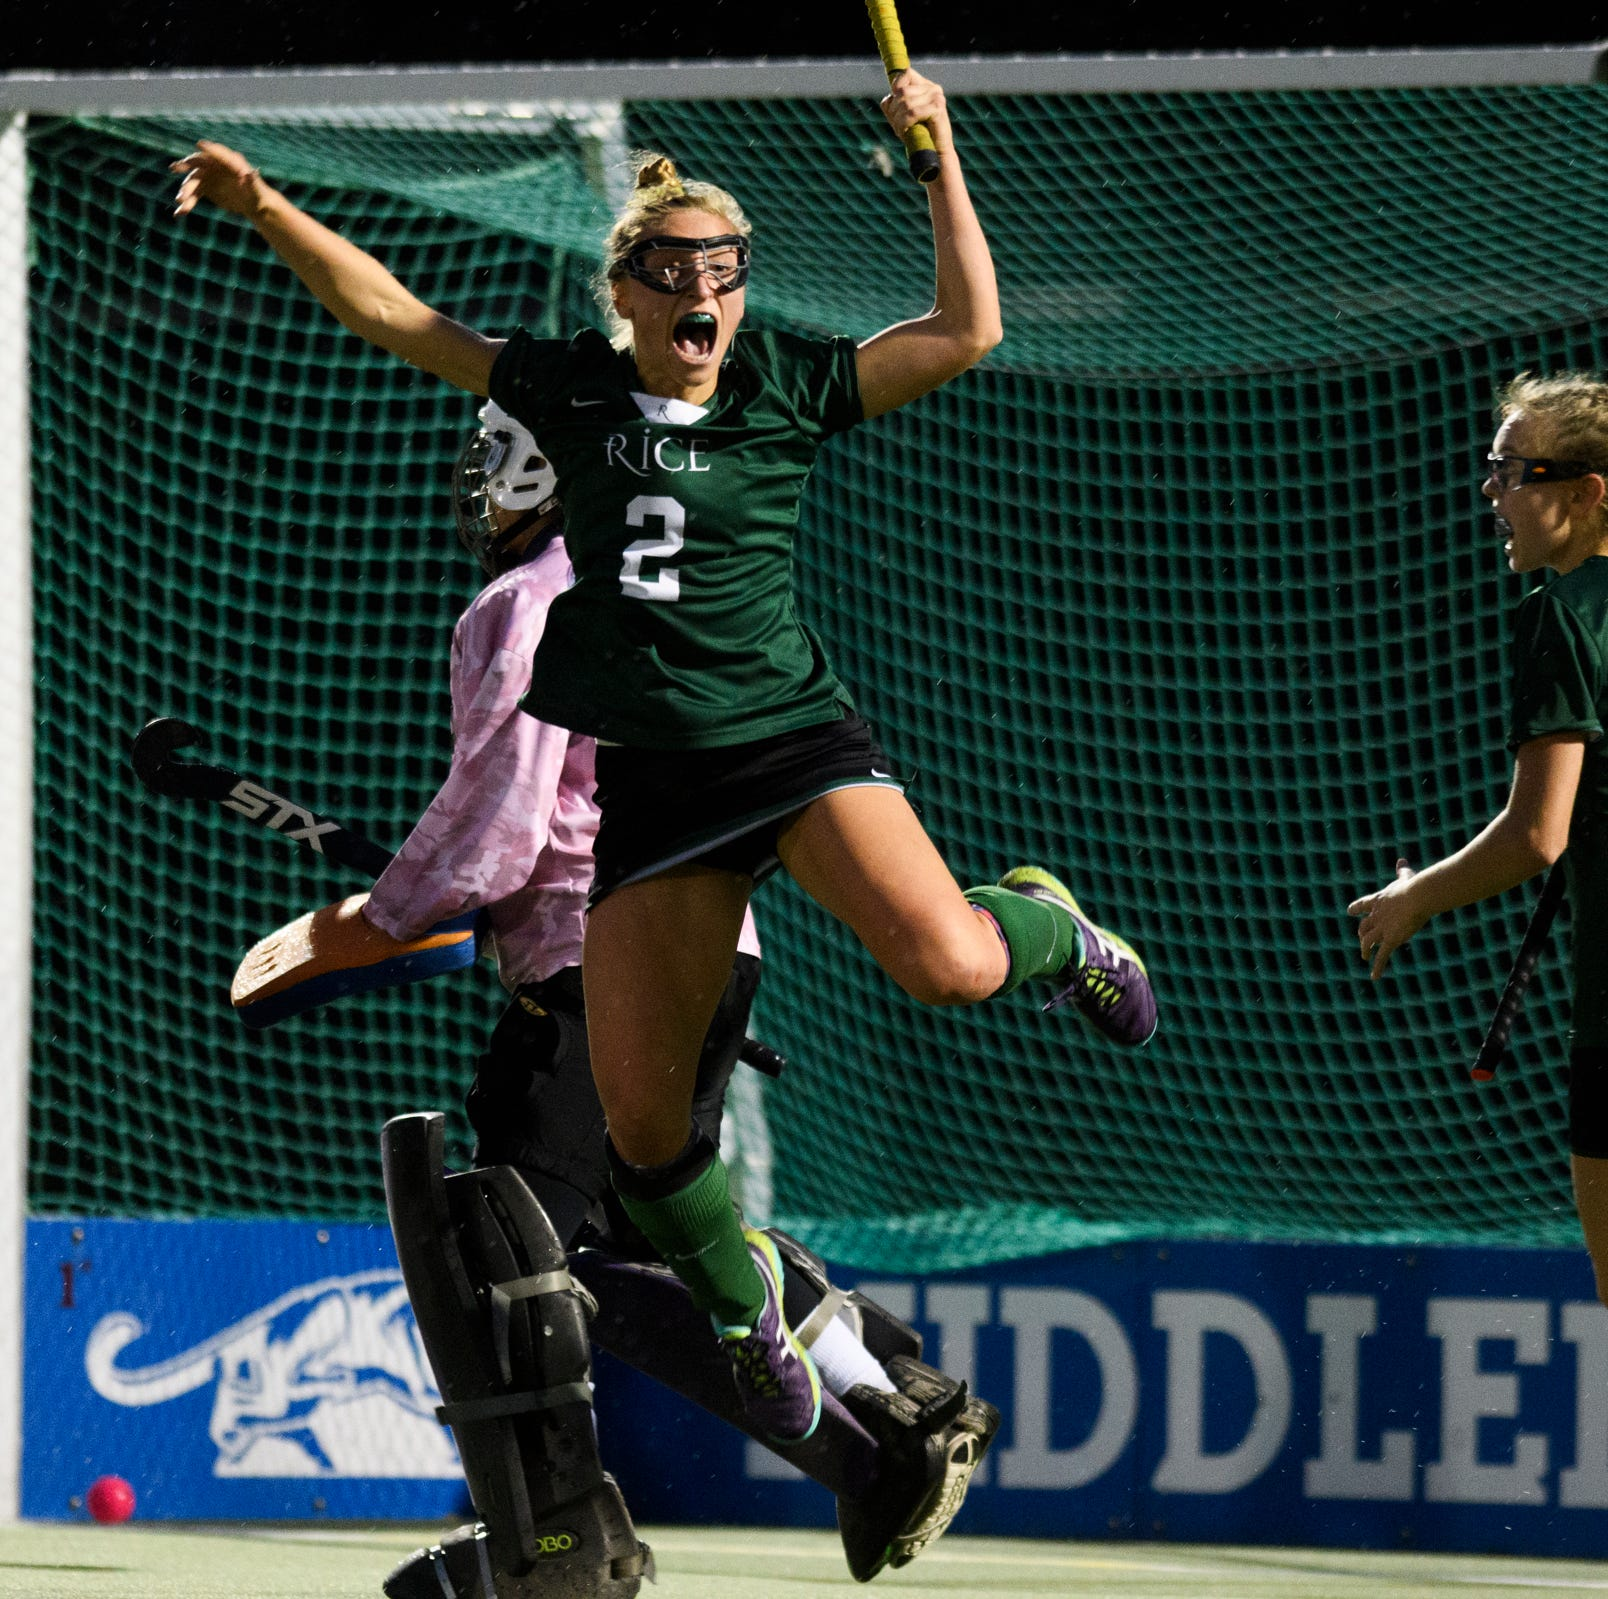 24th Annual Free Press All-State Field Hockey Team